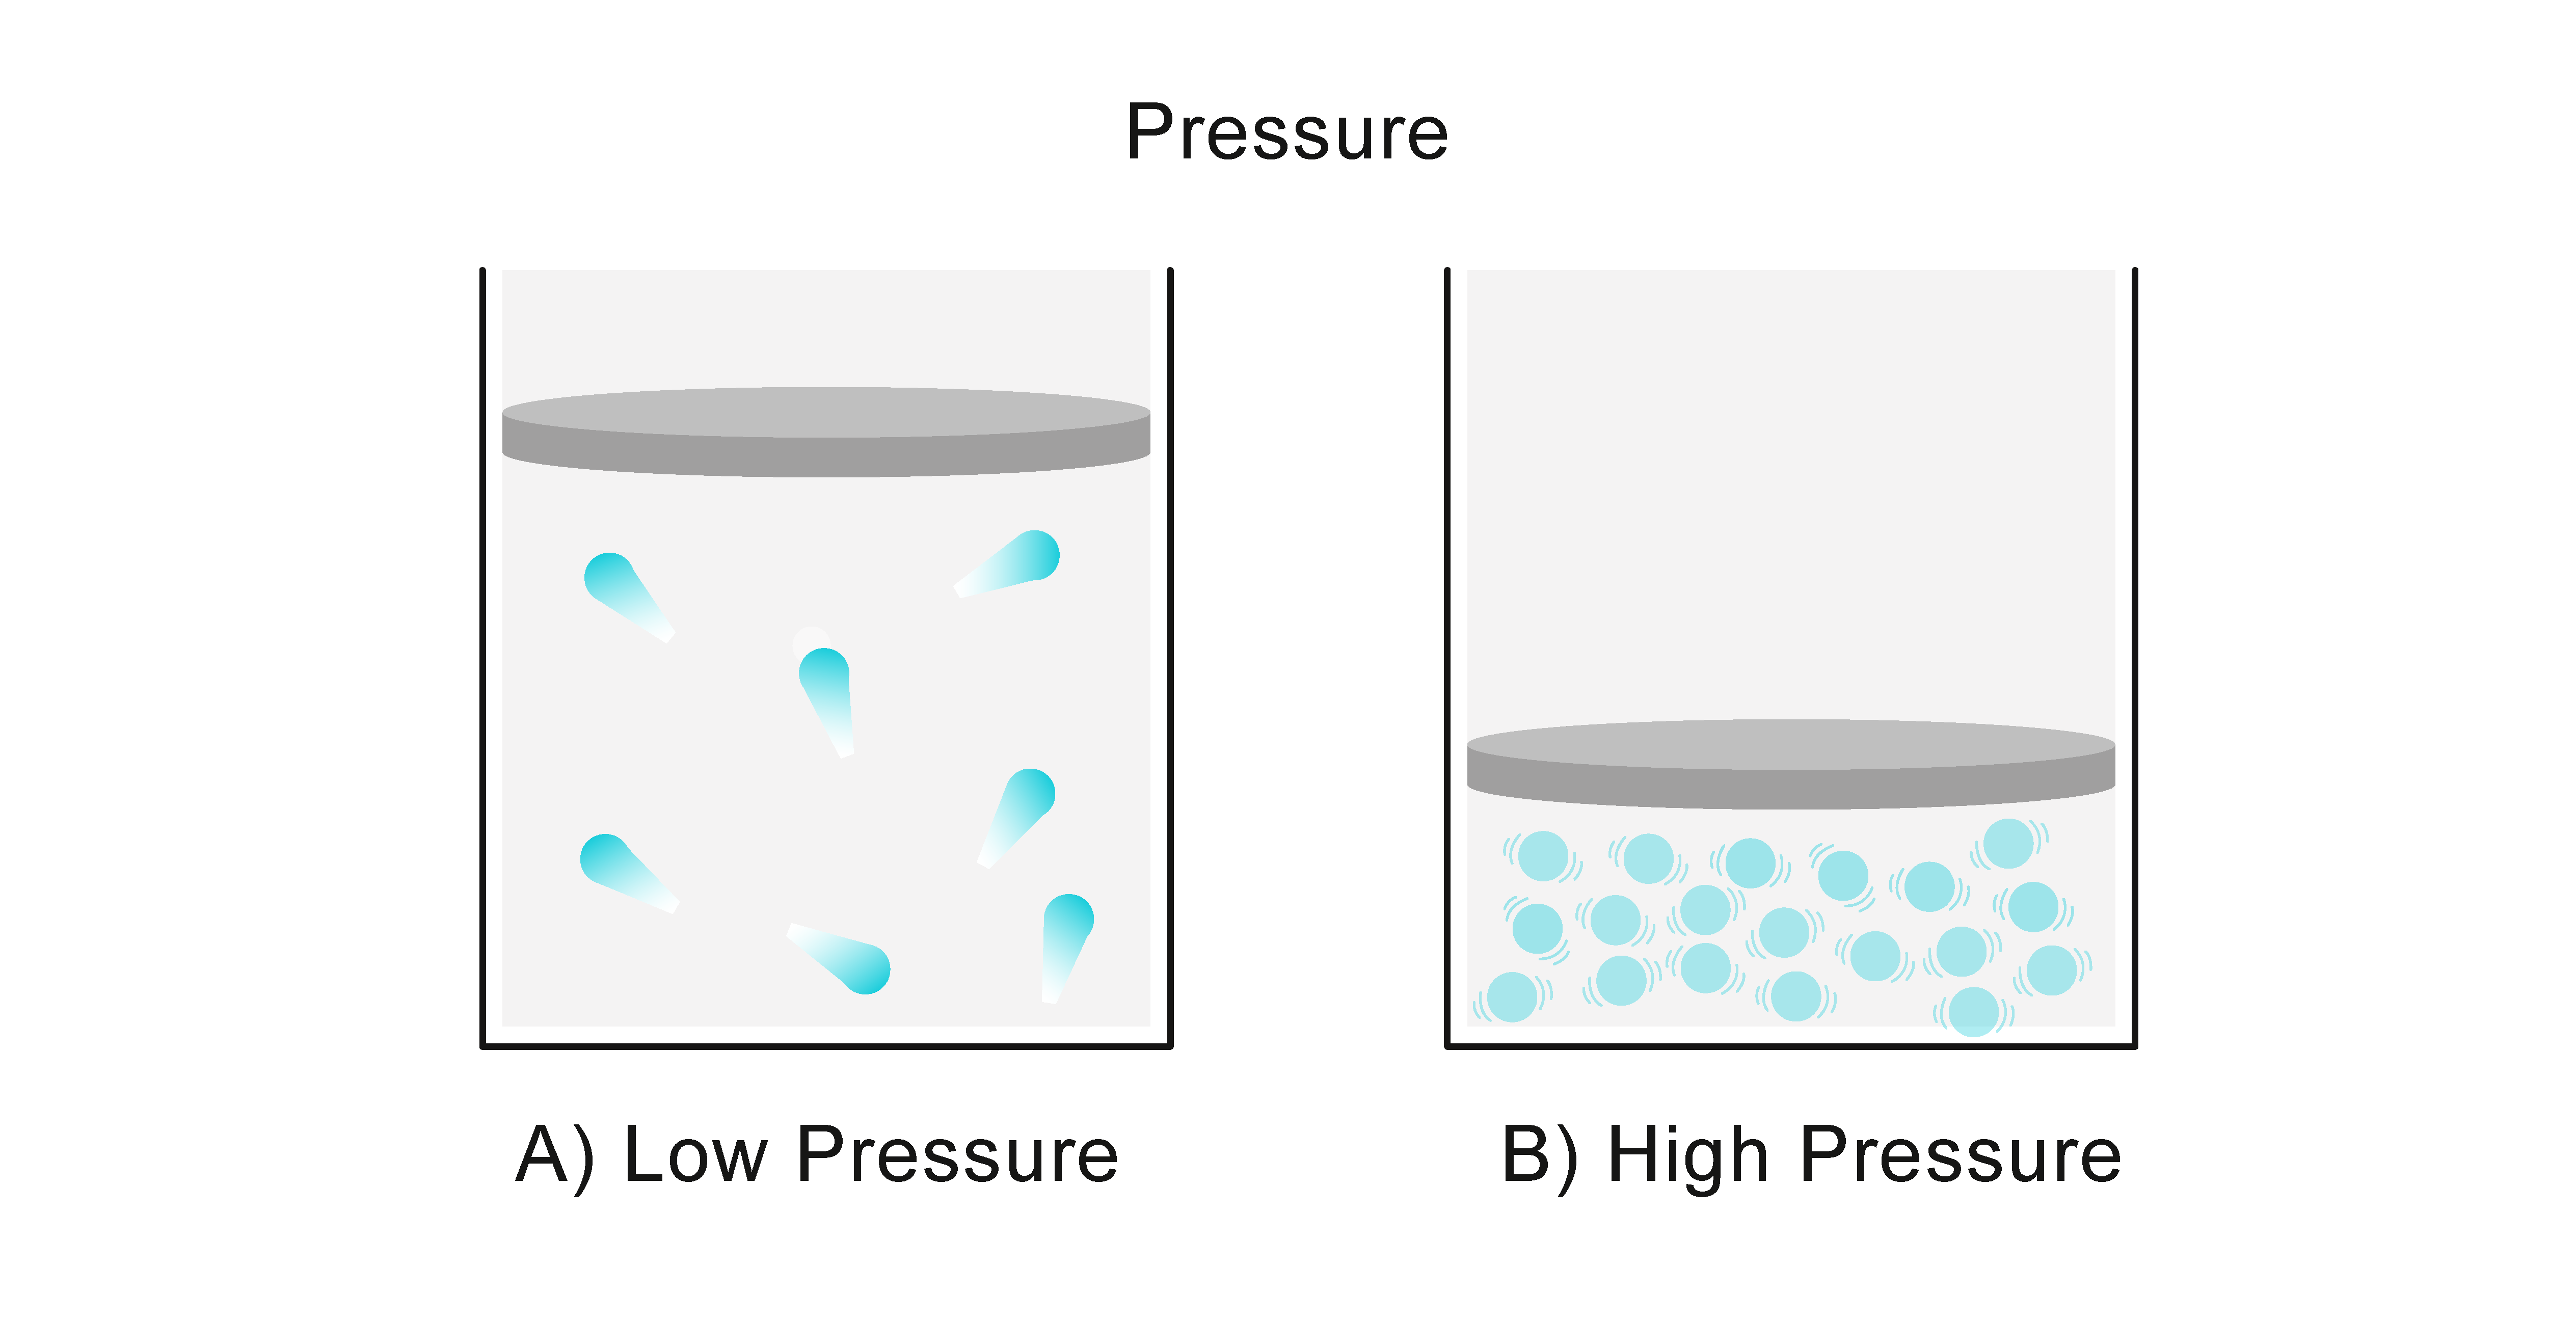 boyle u0026 39 s law is used to calculate how much the pressure